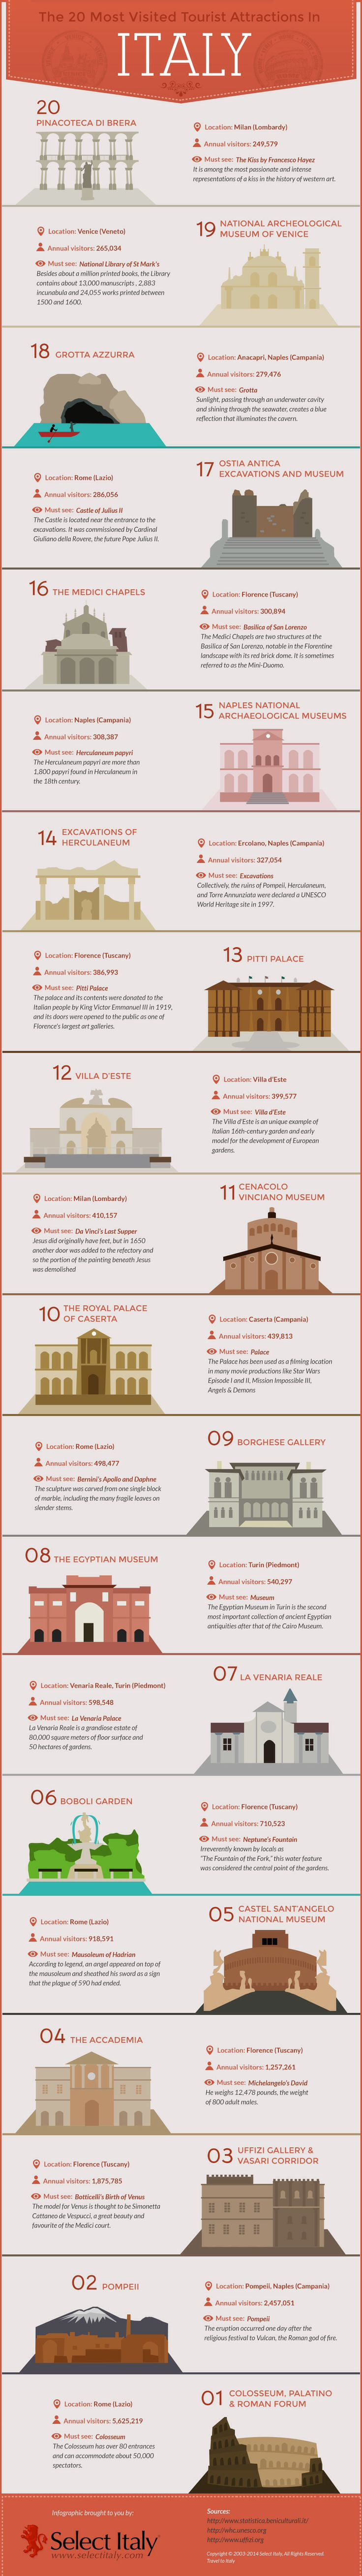 TEN MOST VISITED SITES IN ITALY